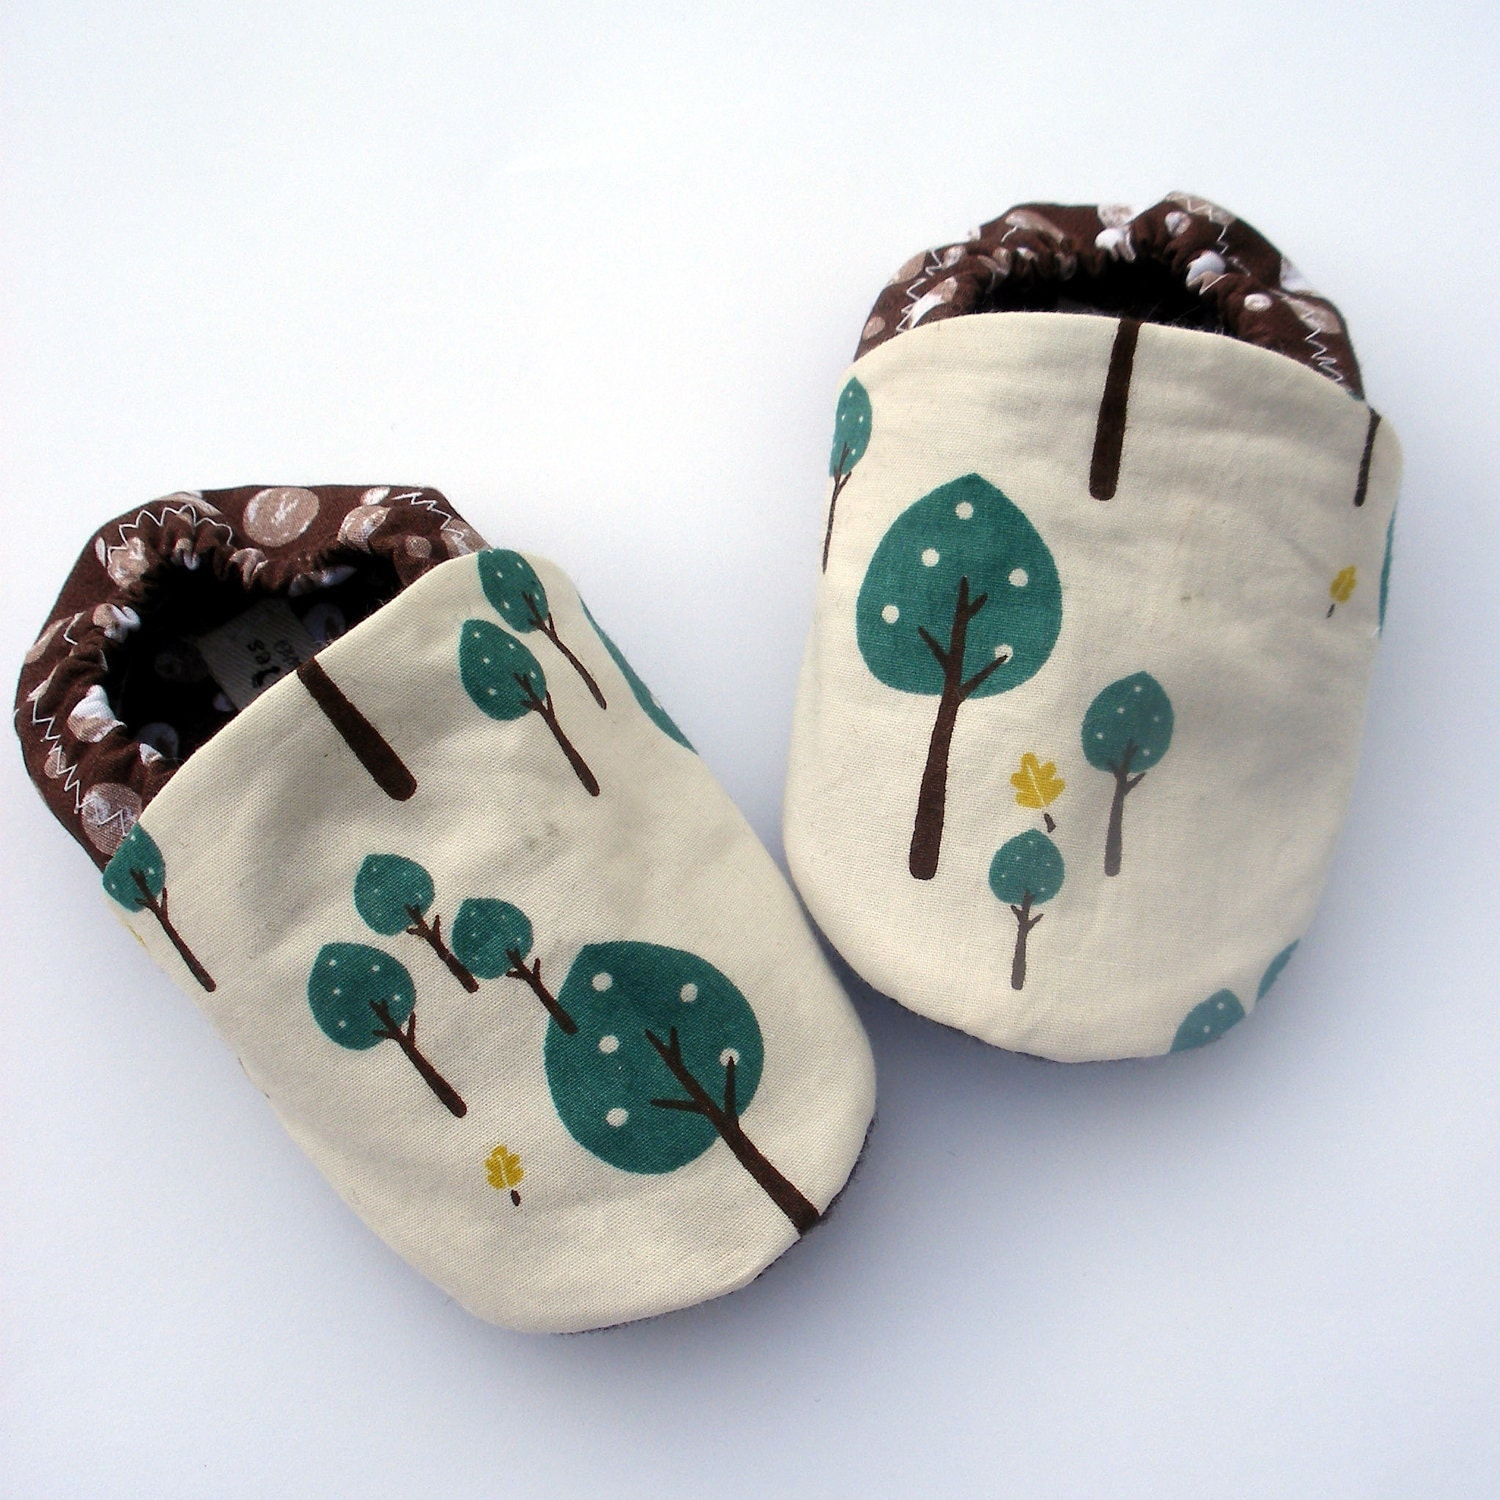 When it's time for baby shoes, you may wonder if hard or soft soles are better for your baby's developing feet. It may surprise you (or at least your parents) to know experts are now saying the longer your baby can stay barefoot the better – even after they start walking.